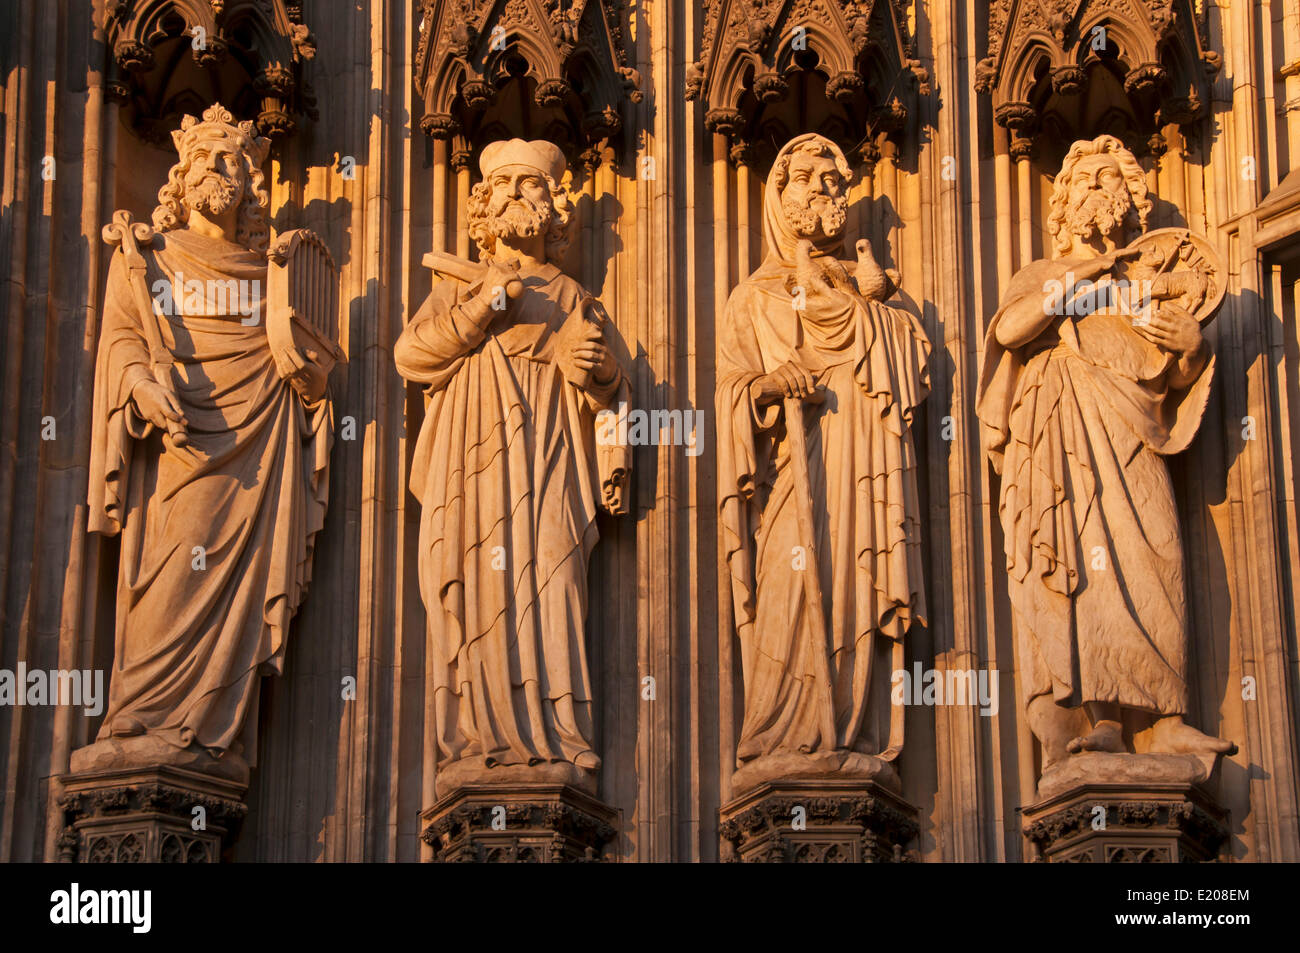 Figures of saints on the main portal, west façade, Cologne Cathedral, Cologne, North Rhine-Westphalia, Germany Stock Photo